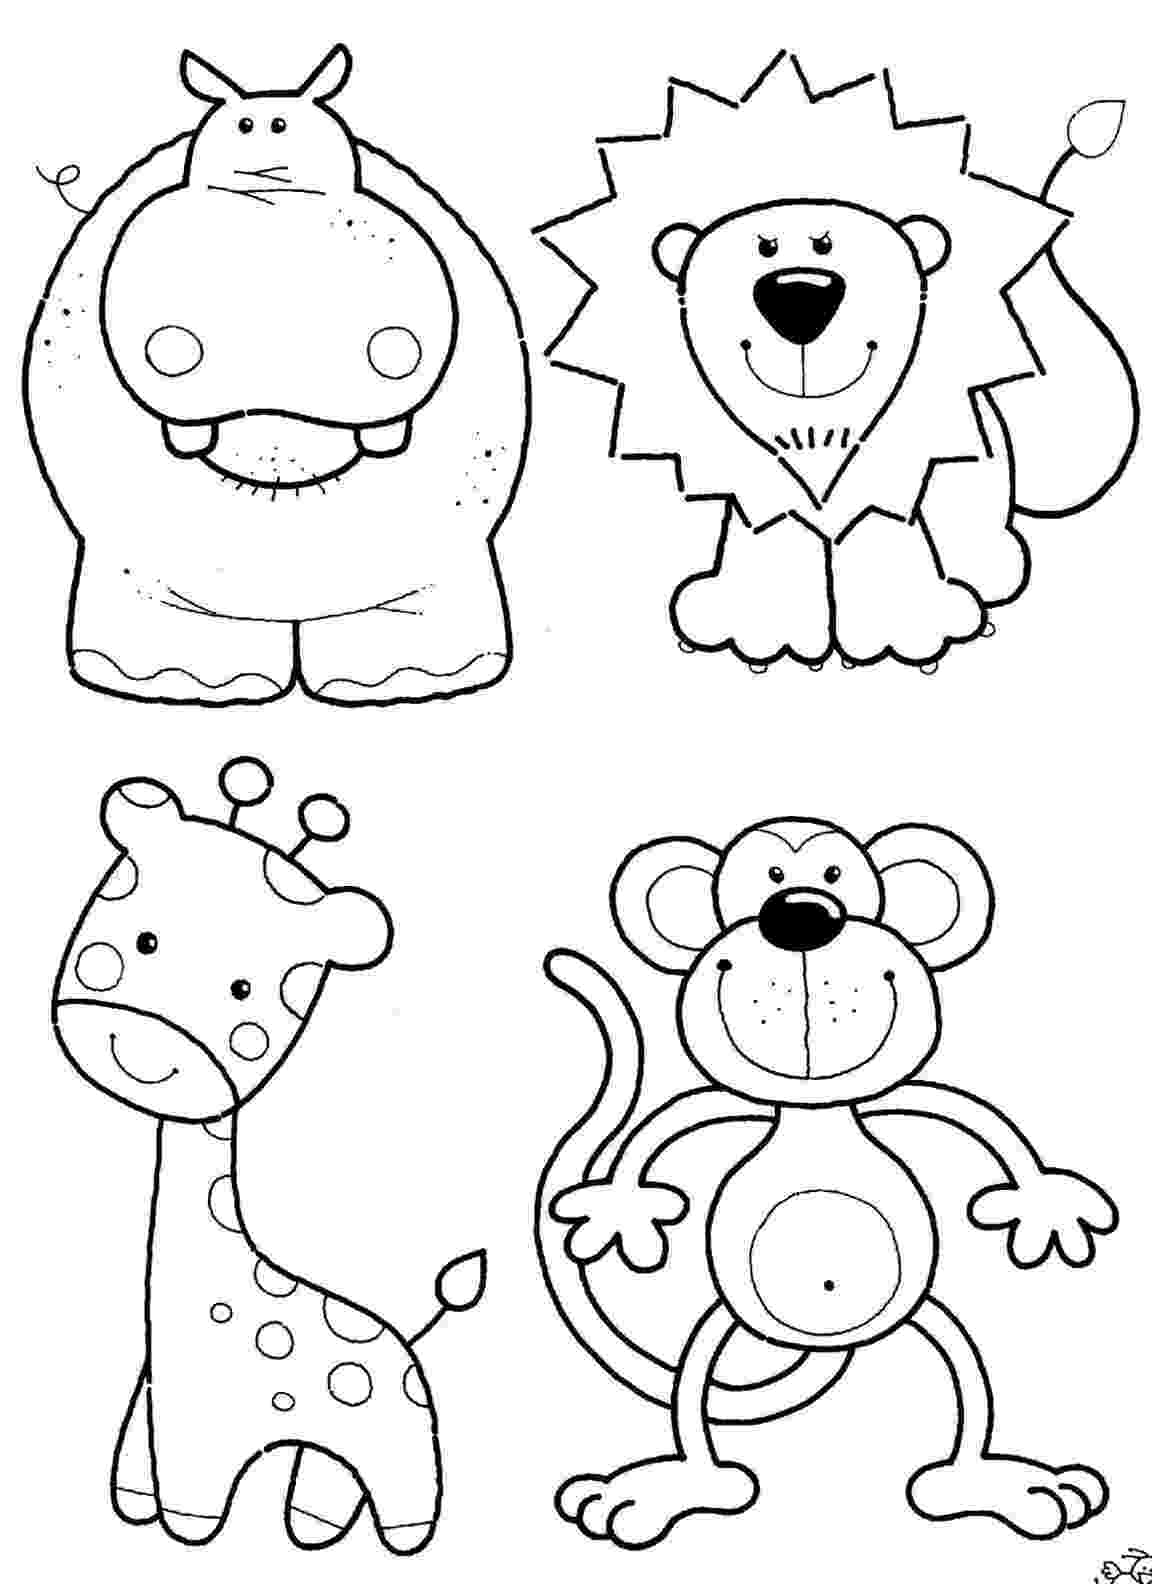 animals coloring book pages animal coloring pages pdf dog coloring page animal pages book animals coloring